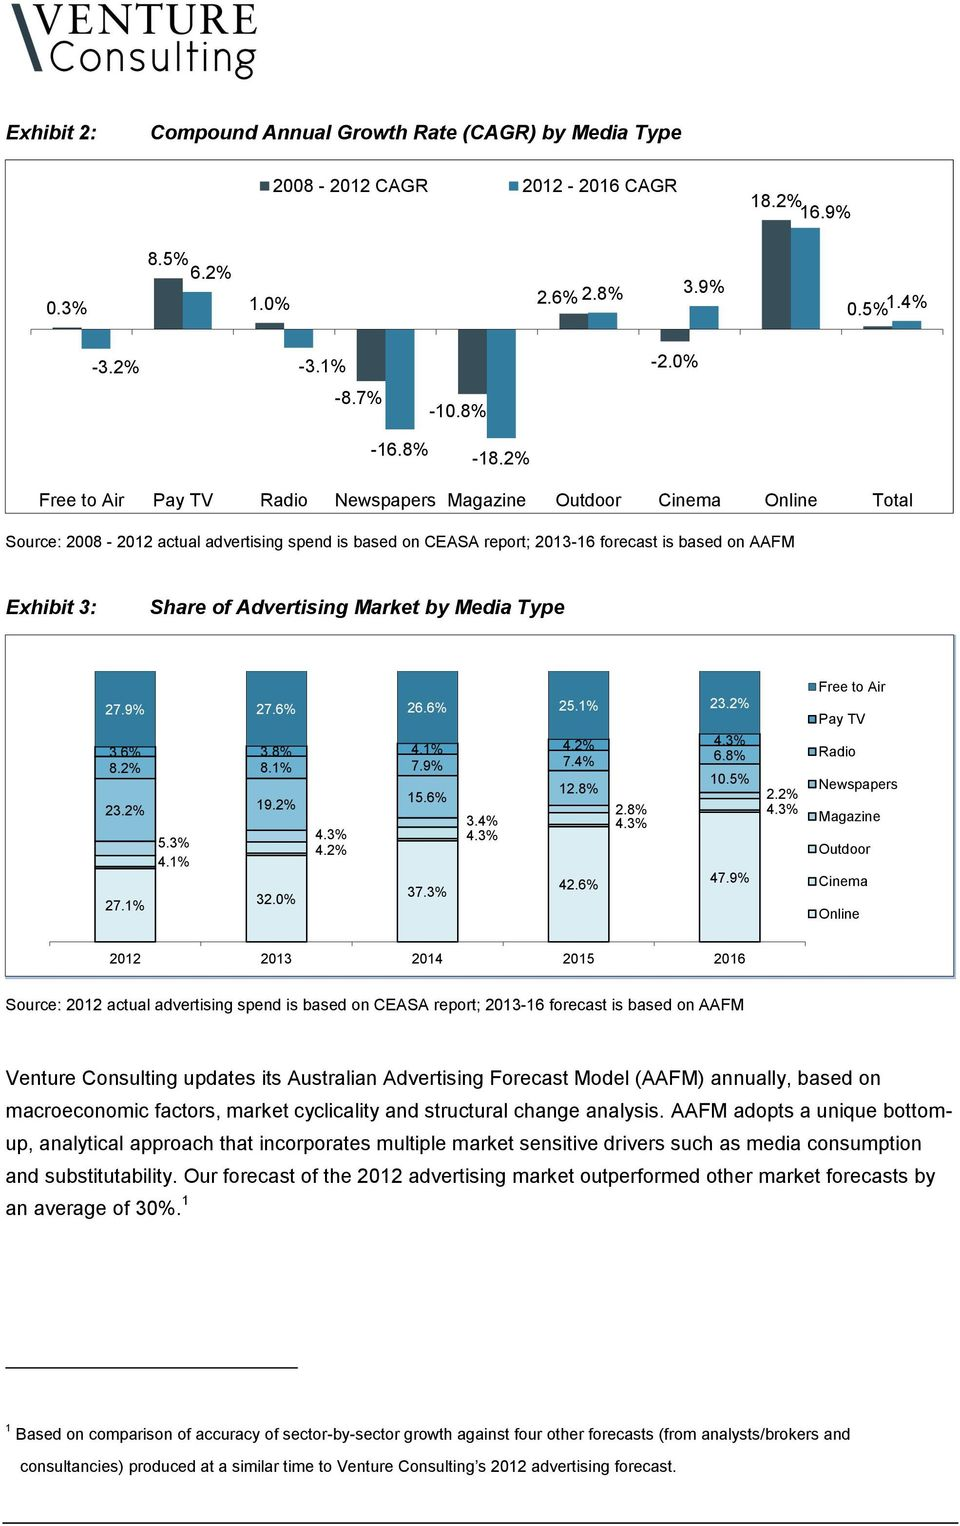 Advertising Market by Media Type 27.9% 27.6% 26.6% 25.1% 23.2% 3.6% 3.8% 4.1% 4.2% 4.3% 8.2% 8.1% 7.9% 7.4% 6.8% 10.5% 12.8% 15.6% 23.2% 19.2% 2.8% 3.4% 4.3% 4.3% 4.3% 5.3% 4.2% 4.1% 47.9% 42.6% 37.